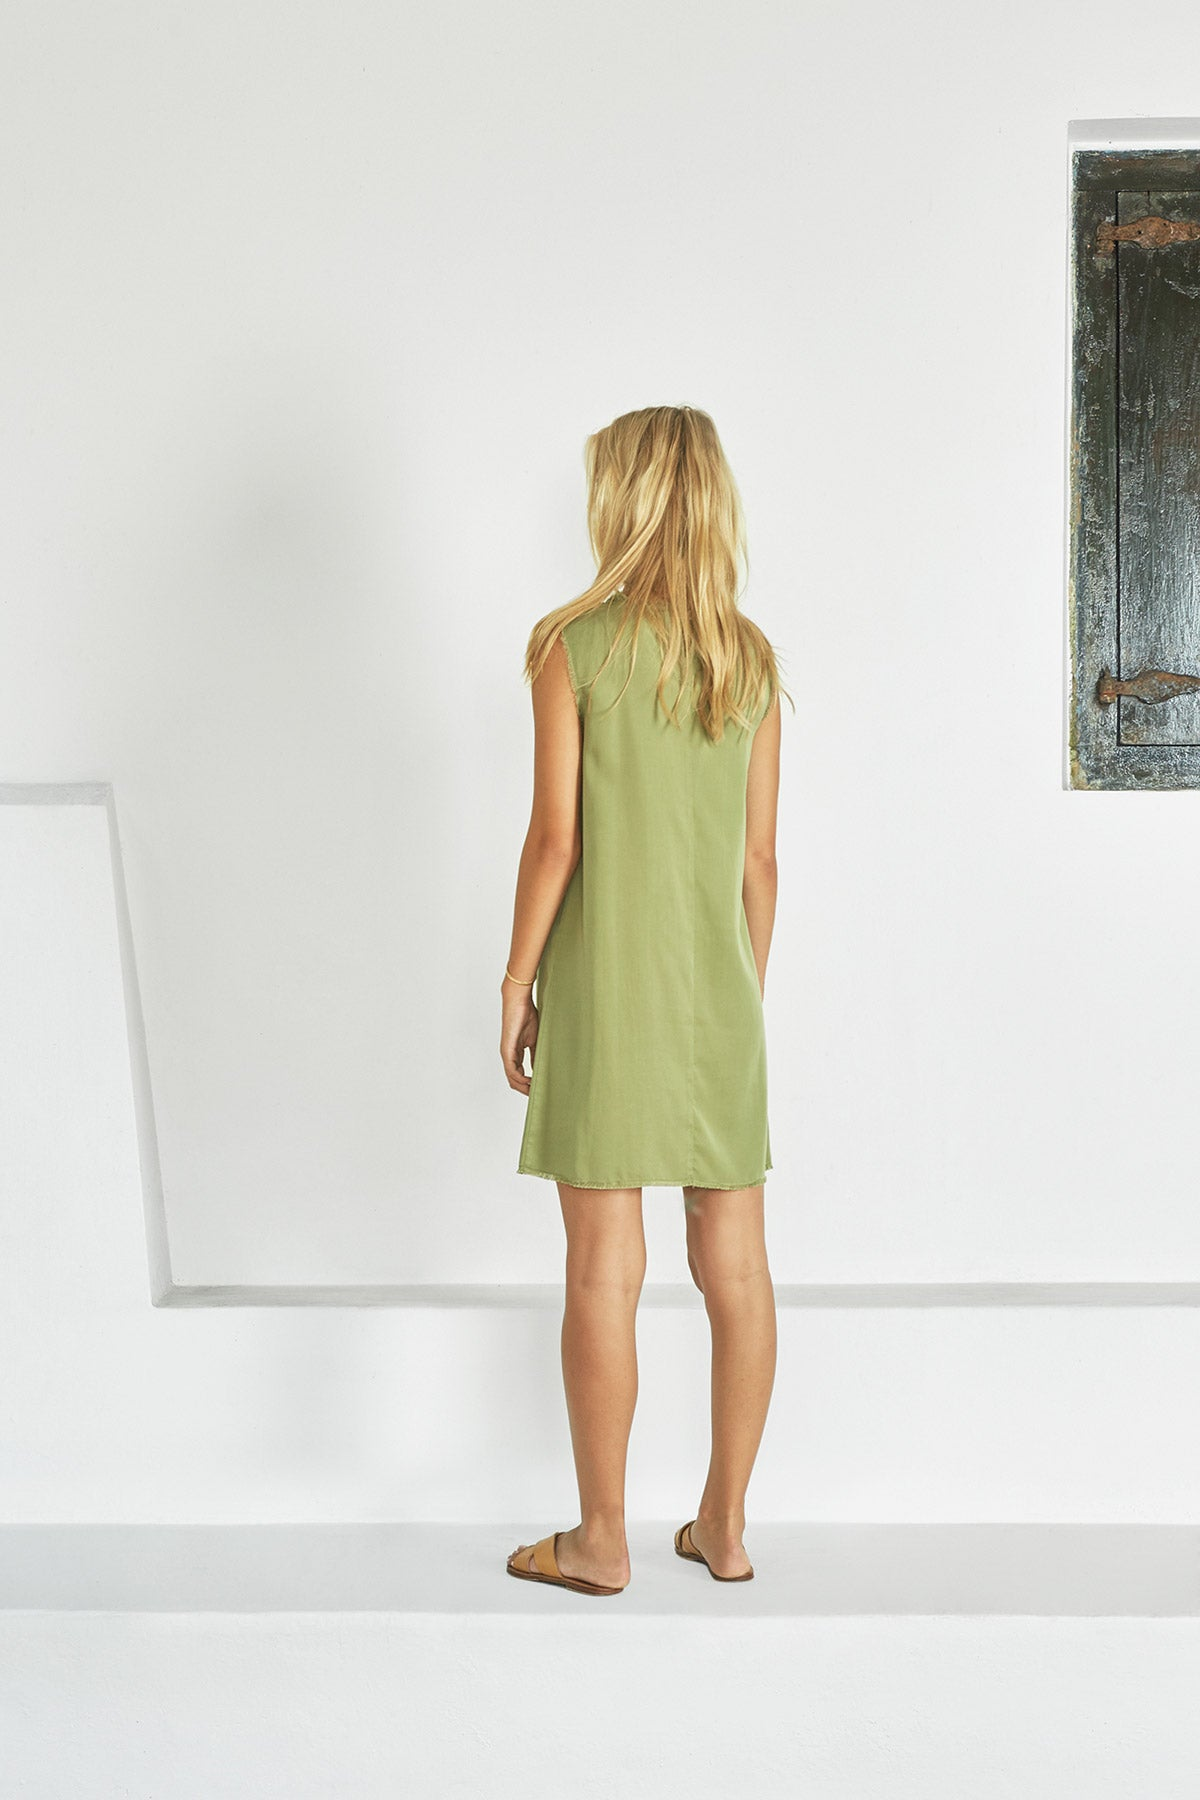 THE MAIRA DRESS